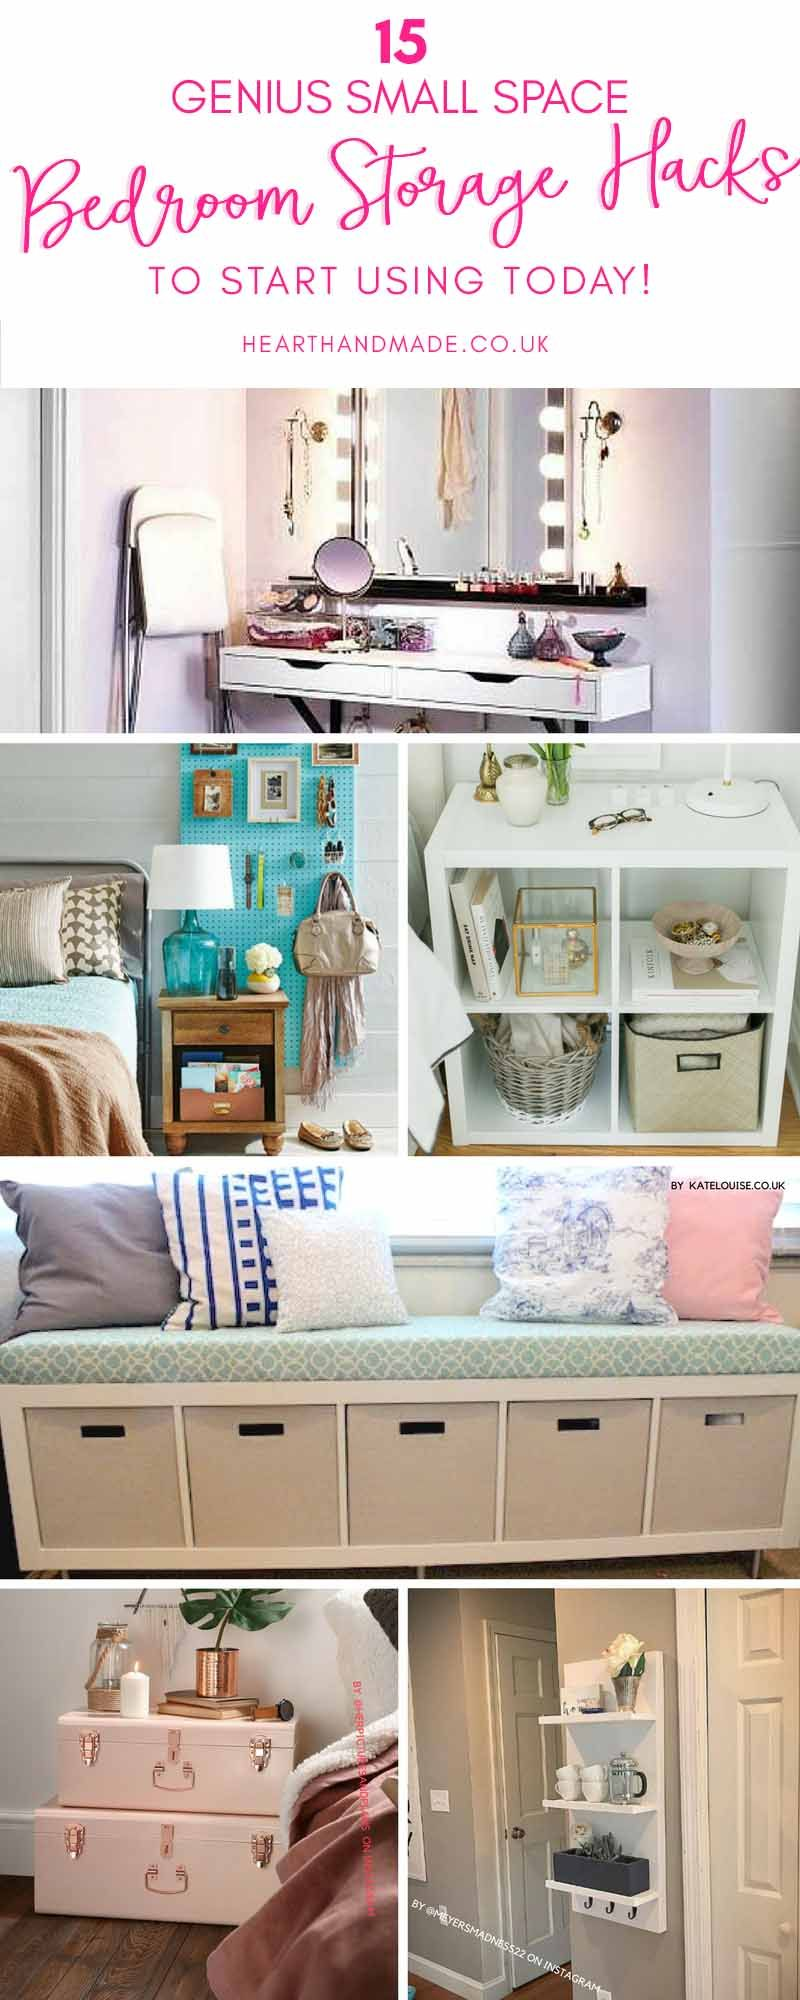 Are you in need of some genius bedroom storage ideas?  Storage